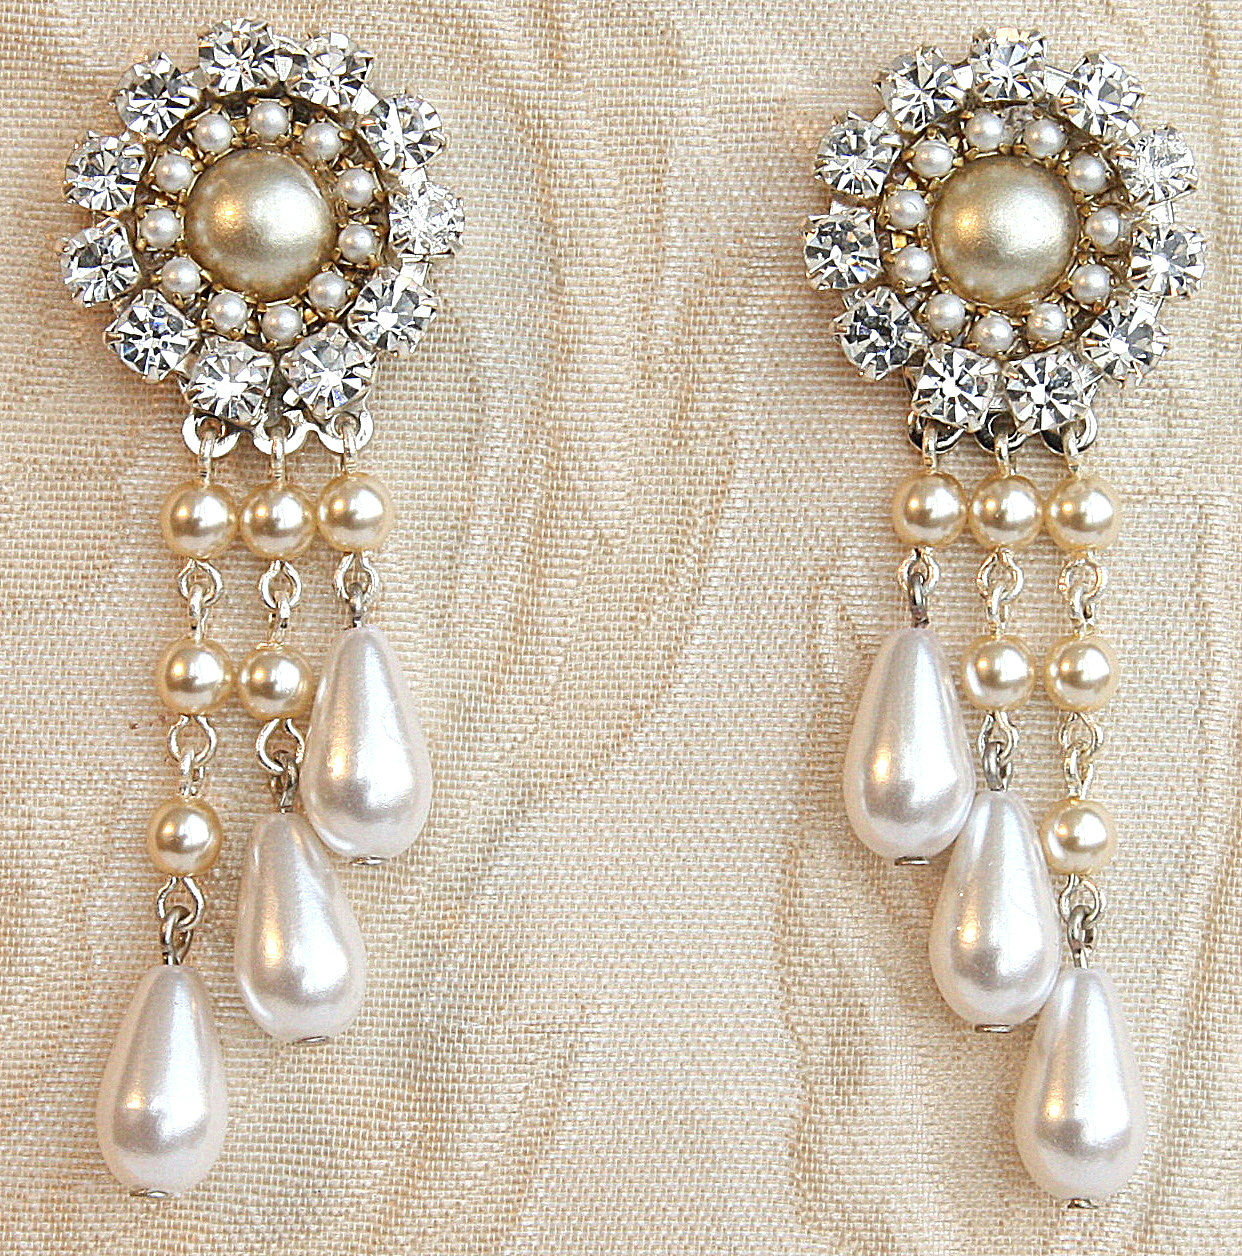 Chandelier earrings laury efrat davidsohn bridal victorian chandelier earrings stunning wedding earrings with pearl and rhinestones bridal victorian chandelier earrings arubaitofo Gallery